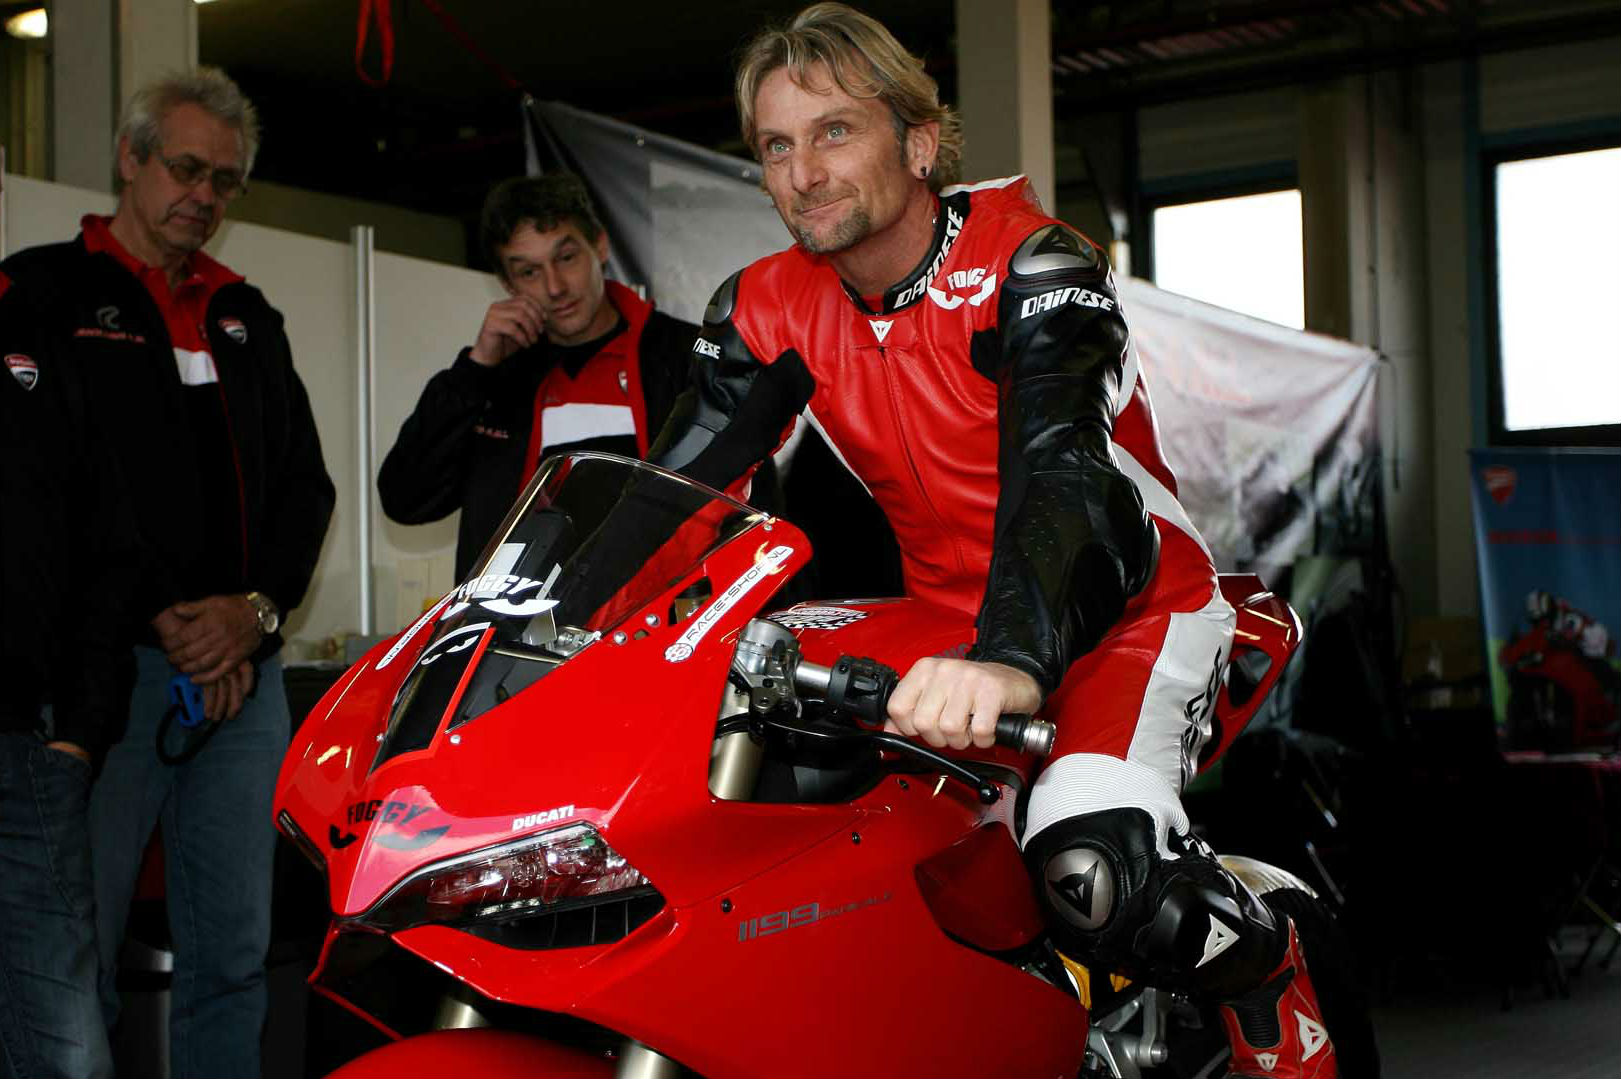 Carl Fogarty to appear in I'm a Celebrity 2014